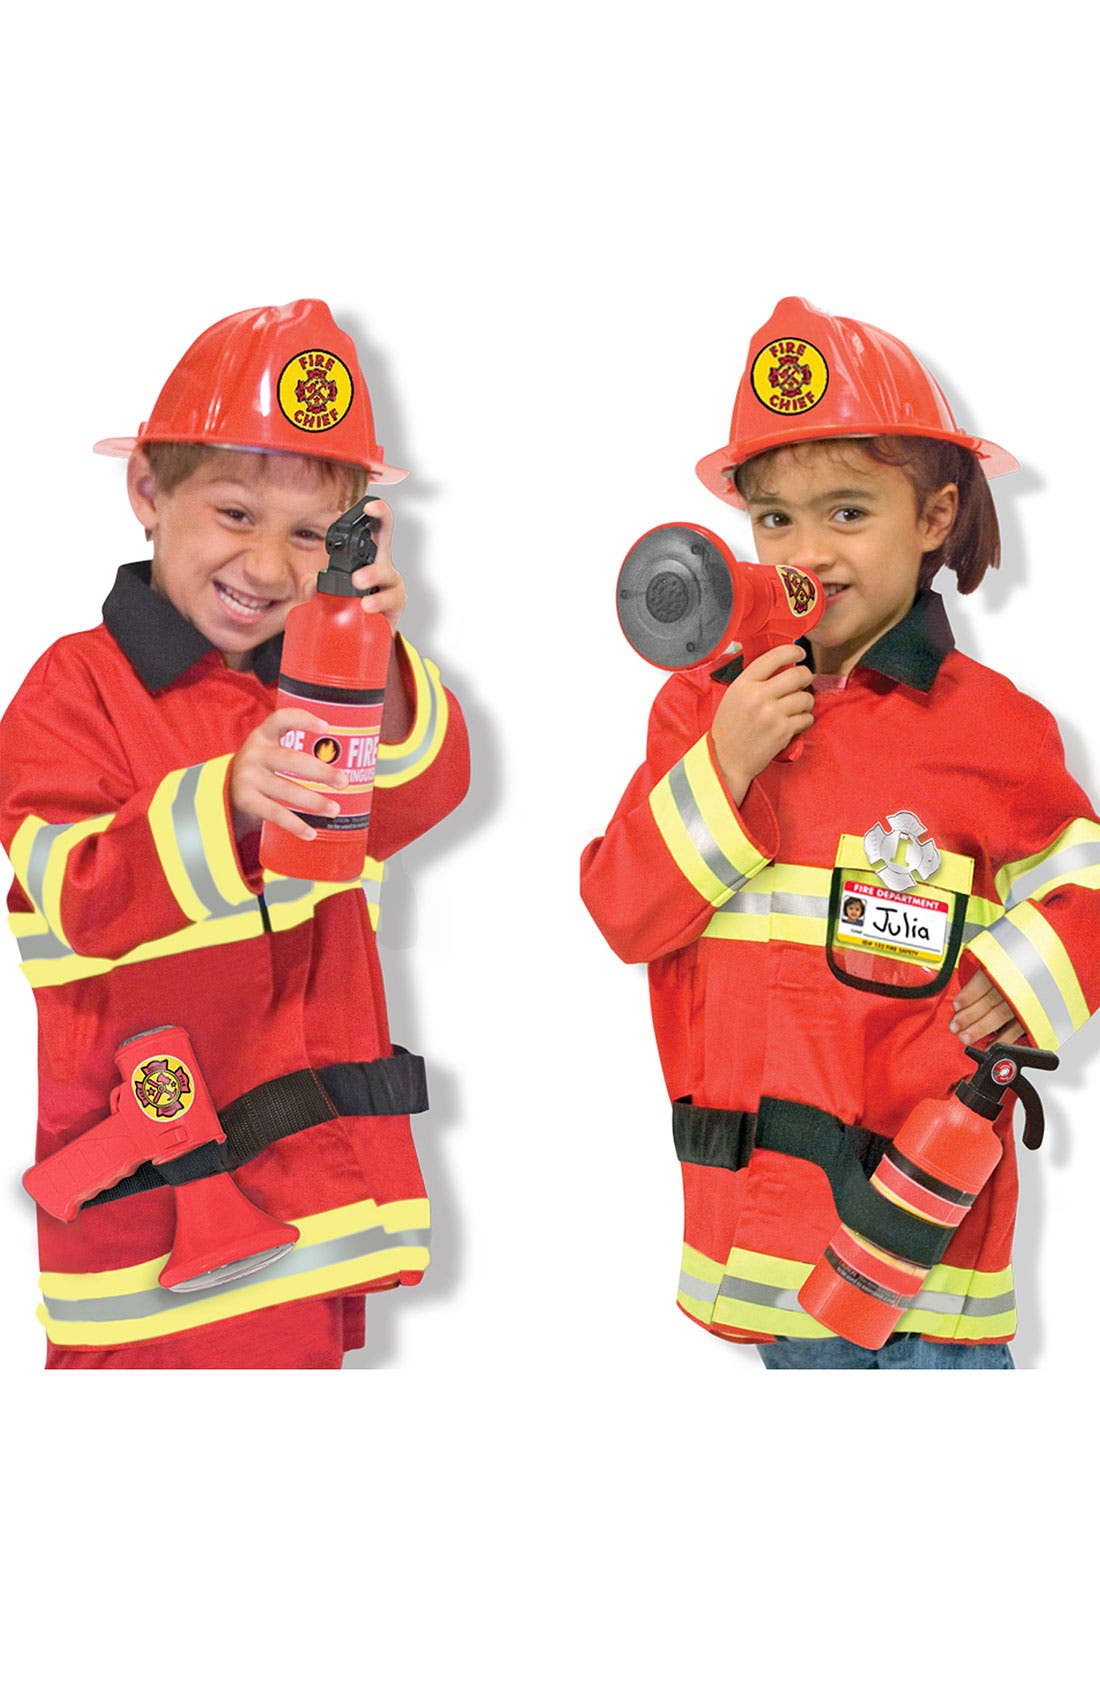 Main Image - Melissa & Doug 'Fire Chief' Costume (Little Kid)